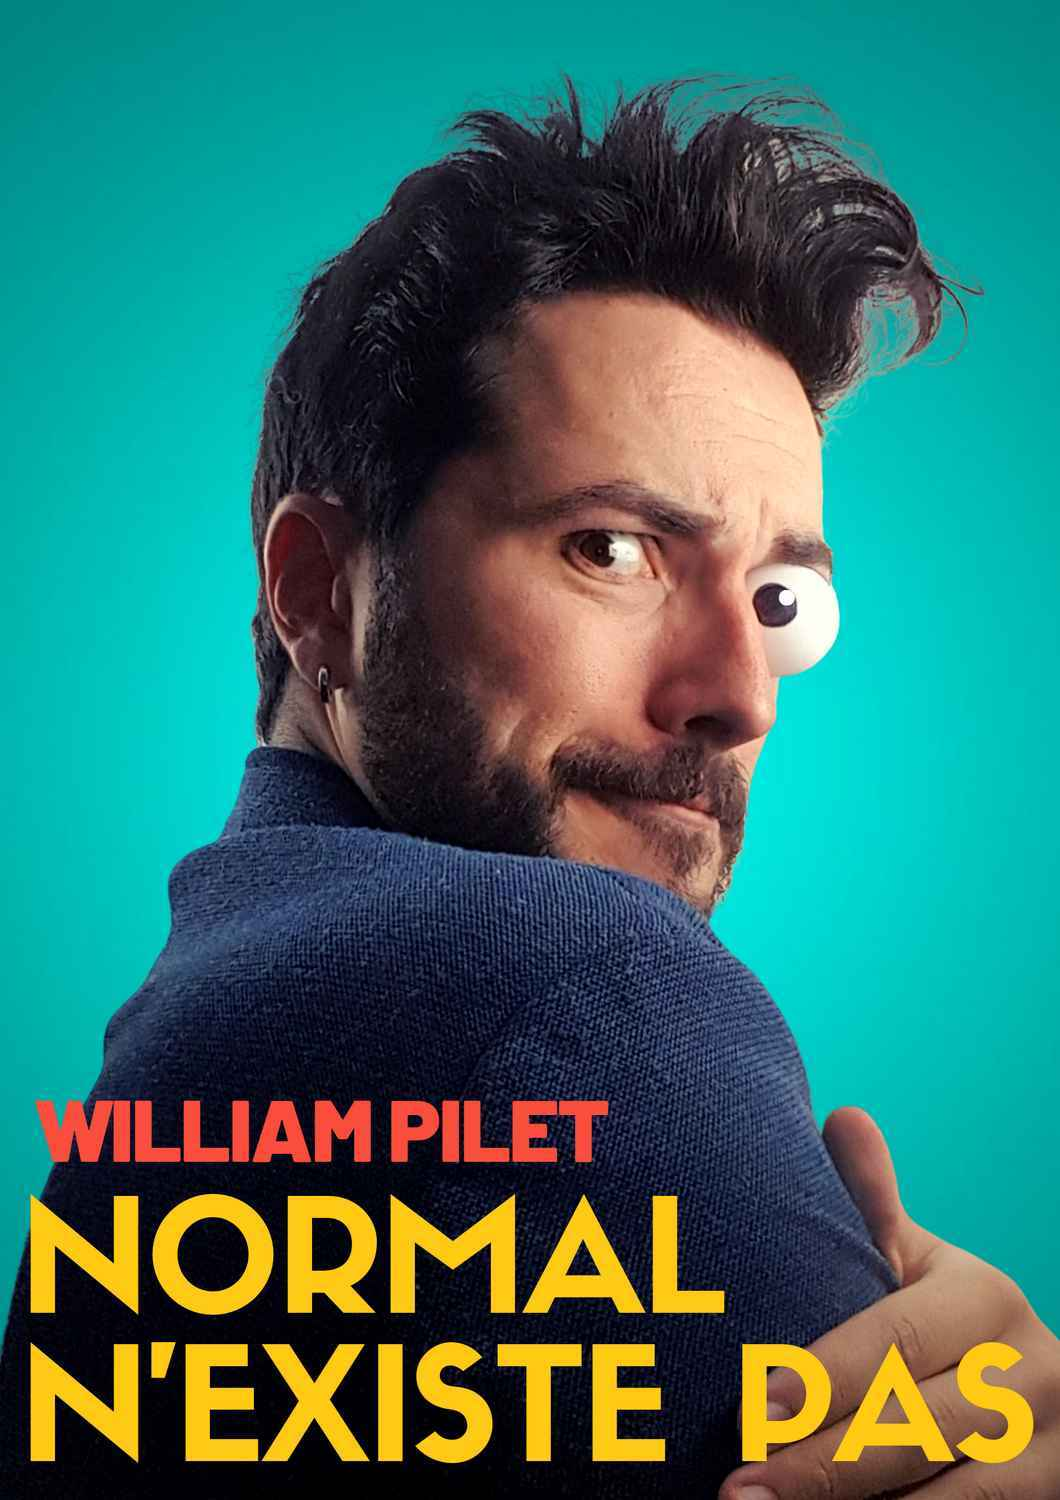 William Pilet Normal n'existe pas